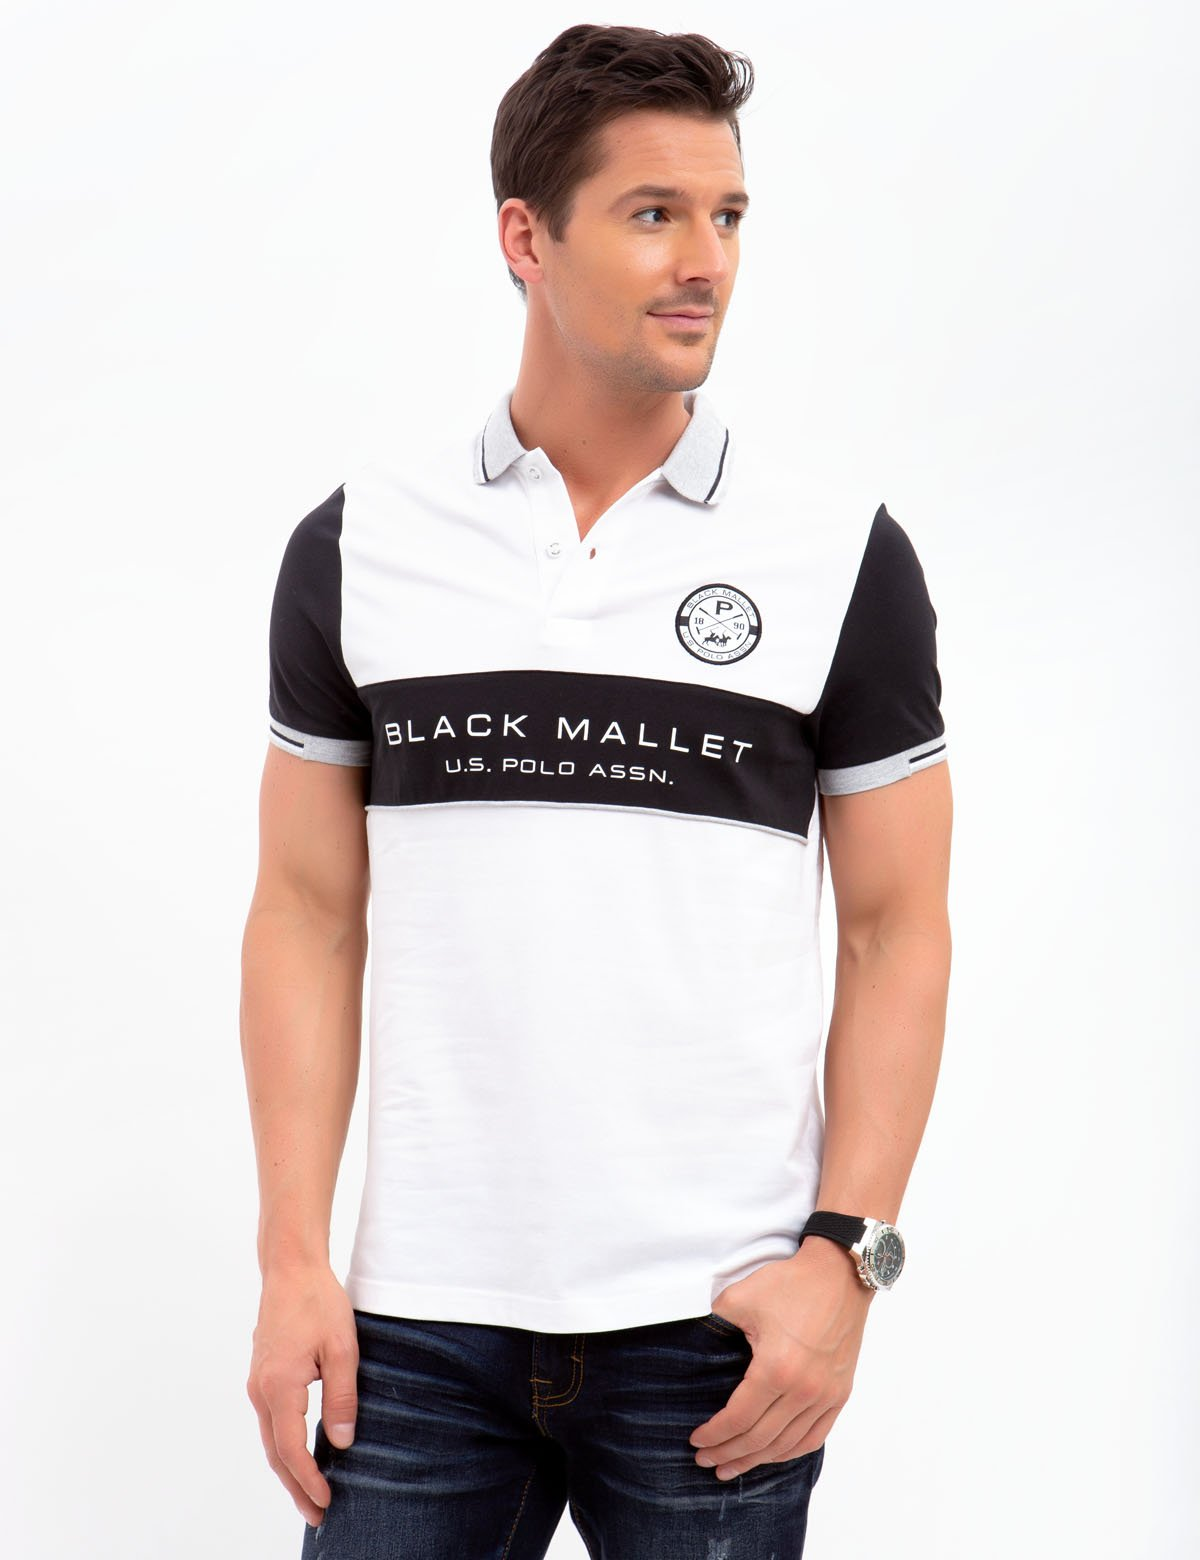 BLACK MALLET SLIM FIT, STRETCH PIQUE, COLORBOCK POLO SHIRT